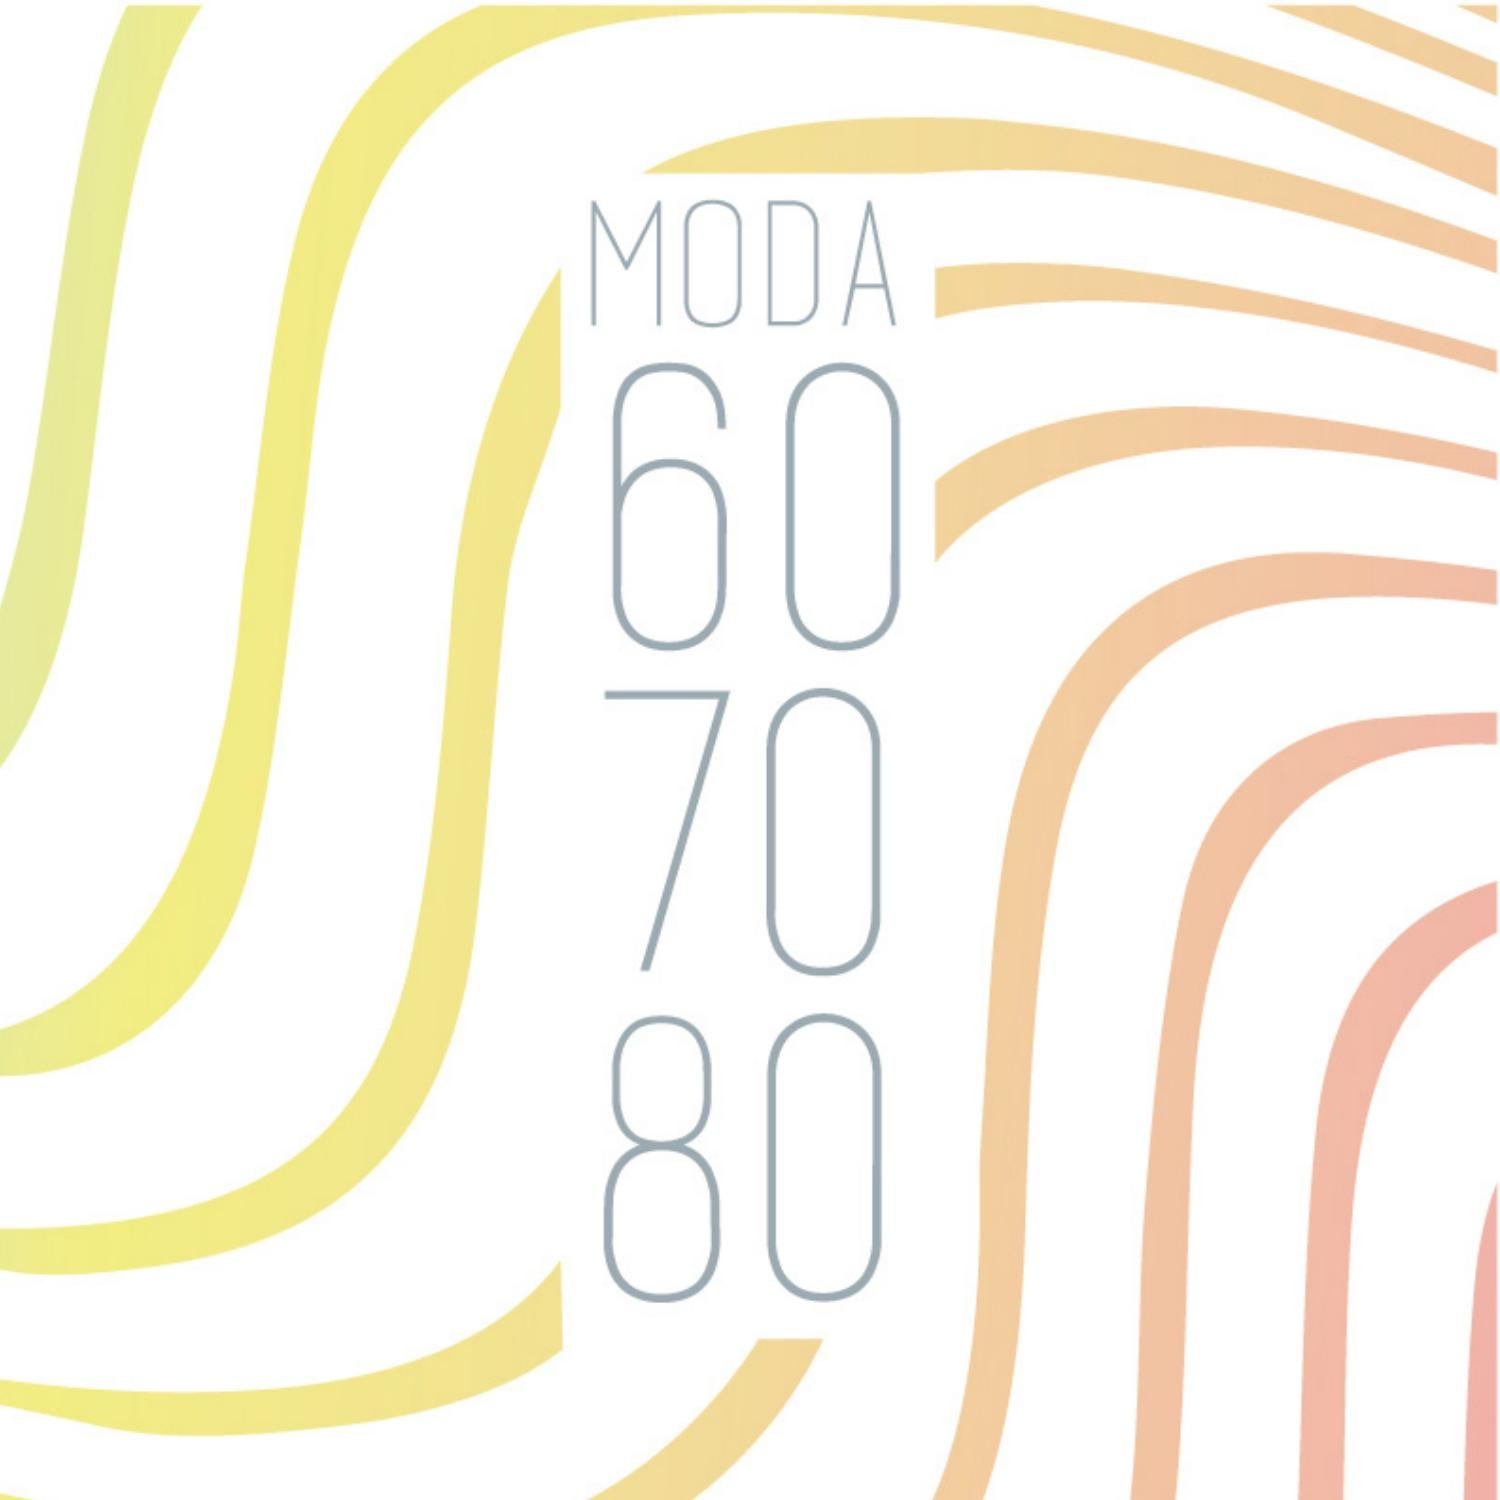 e70c7dded MODA by fiore - issuu